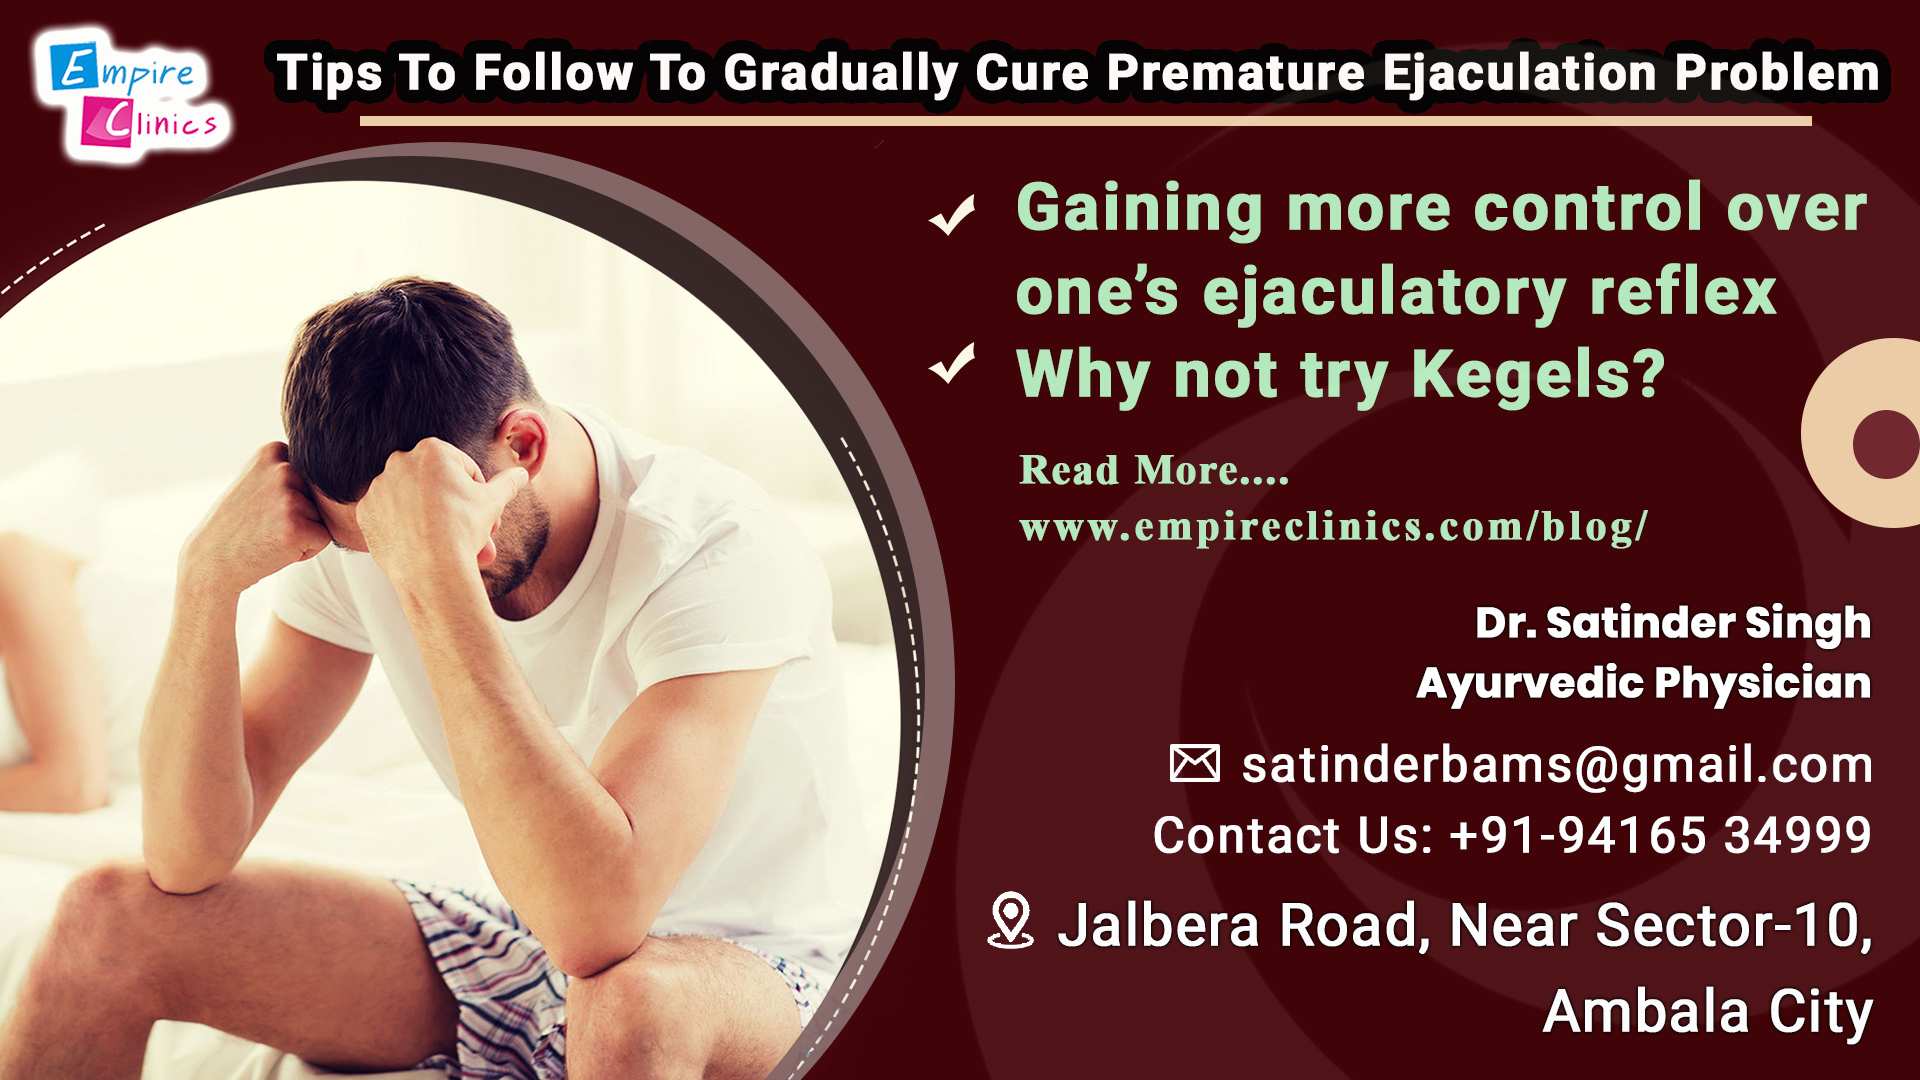 Tips To Follow To Gradually Cure Premature Ejaculation Problem